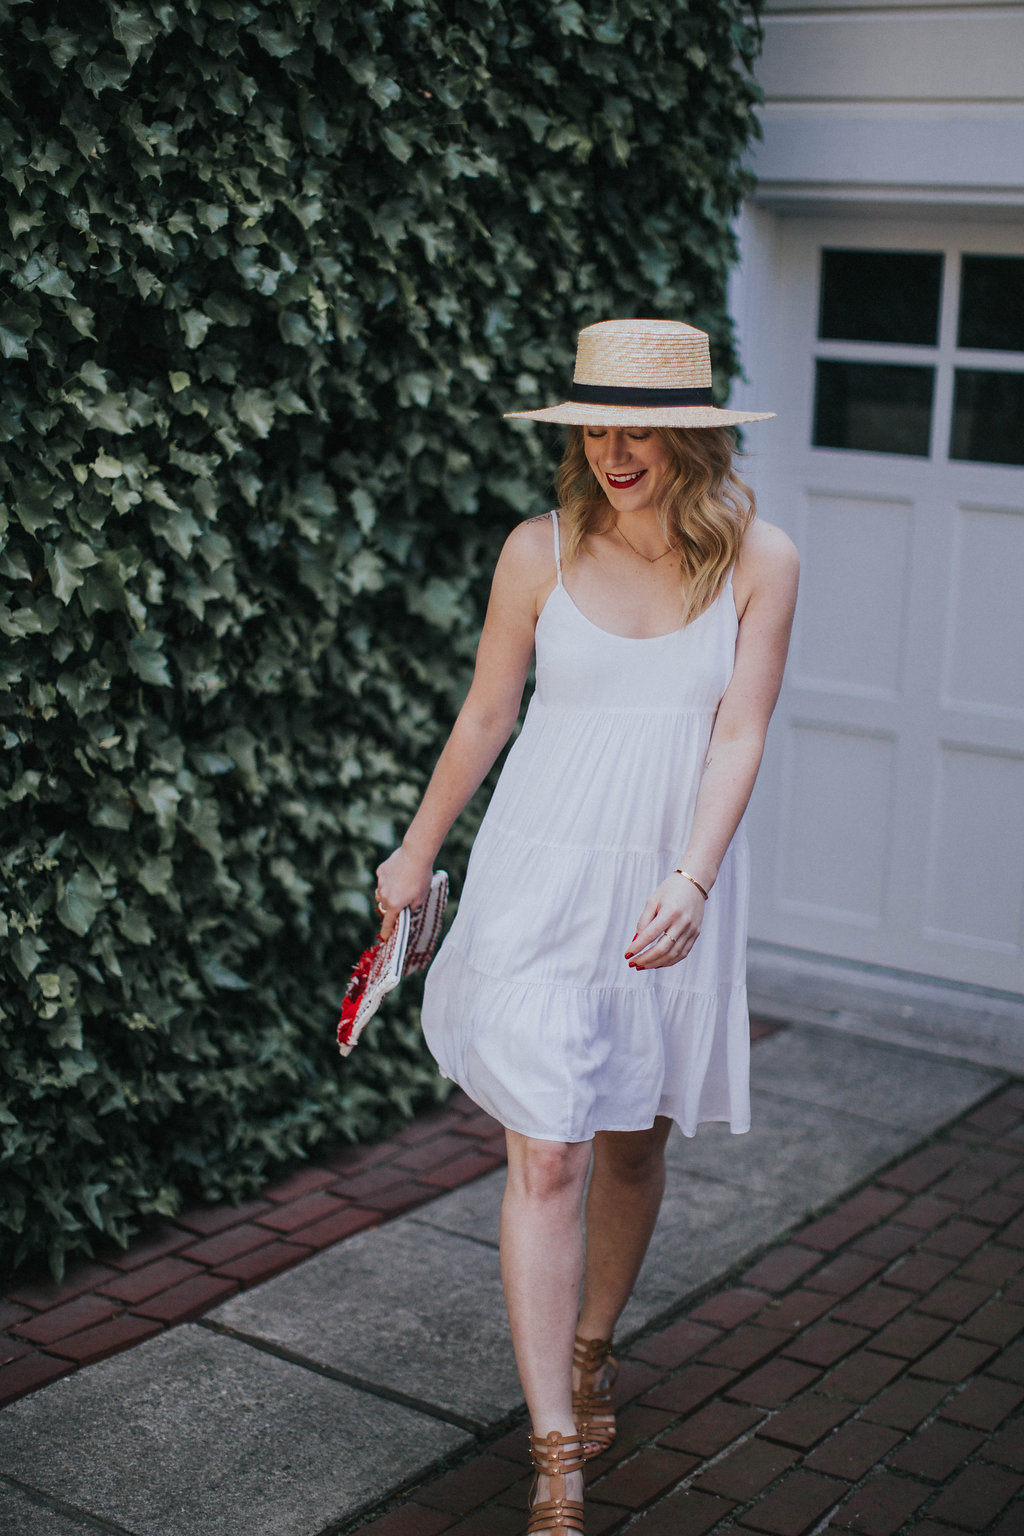 The Best Little White Dress // Cait Weingartner wears a Club Monaco white dress and Steve Madden heels perfect for summer.